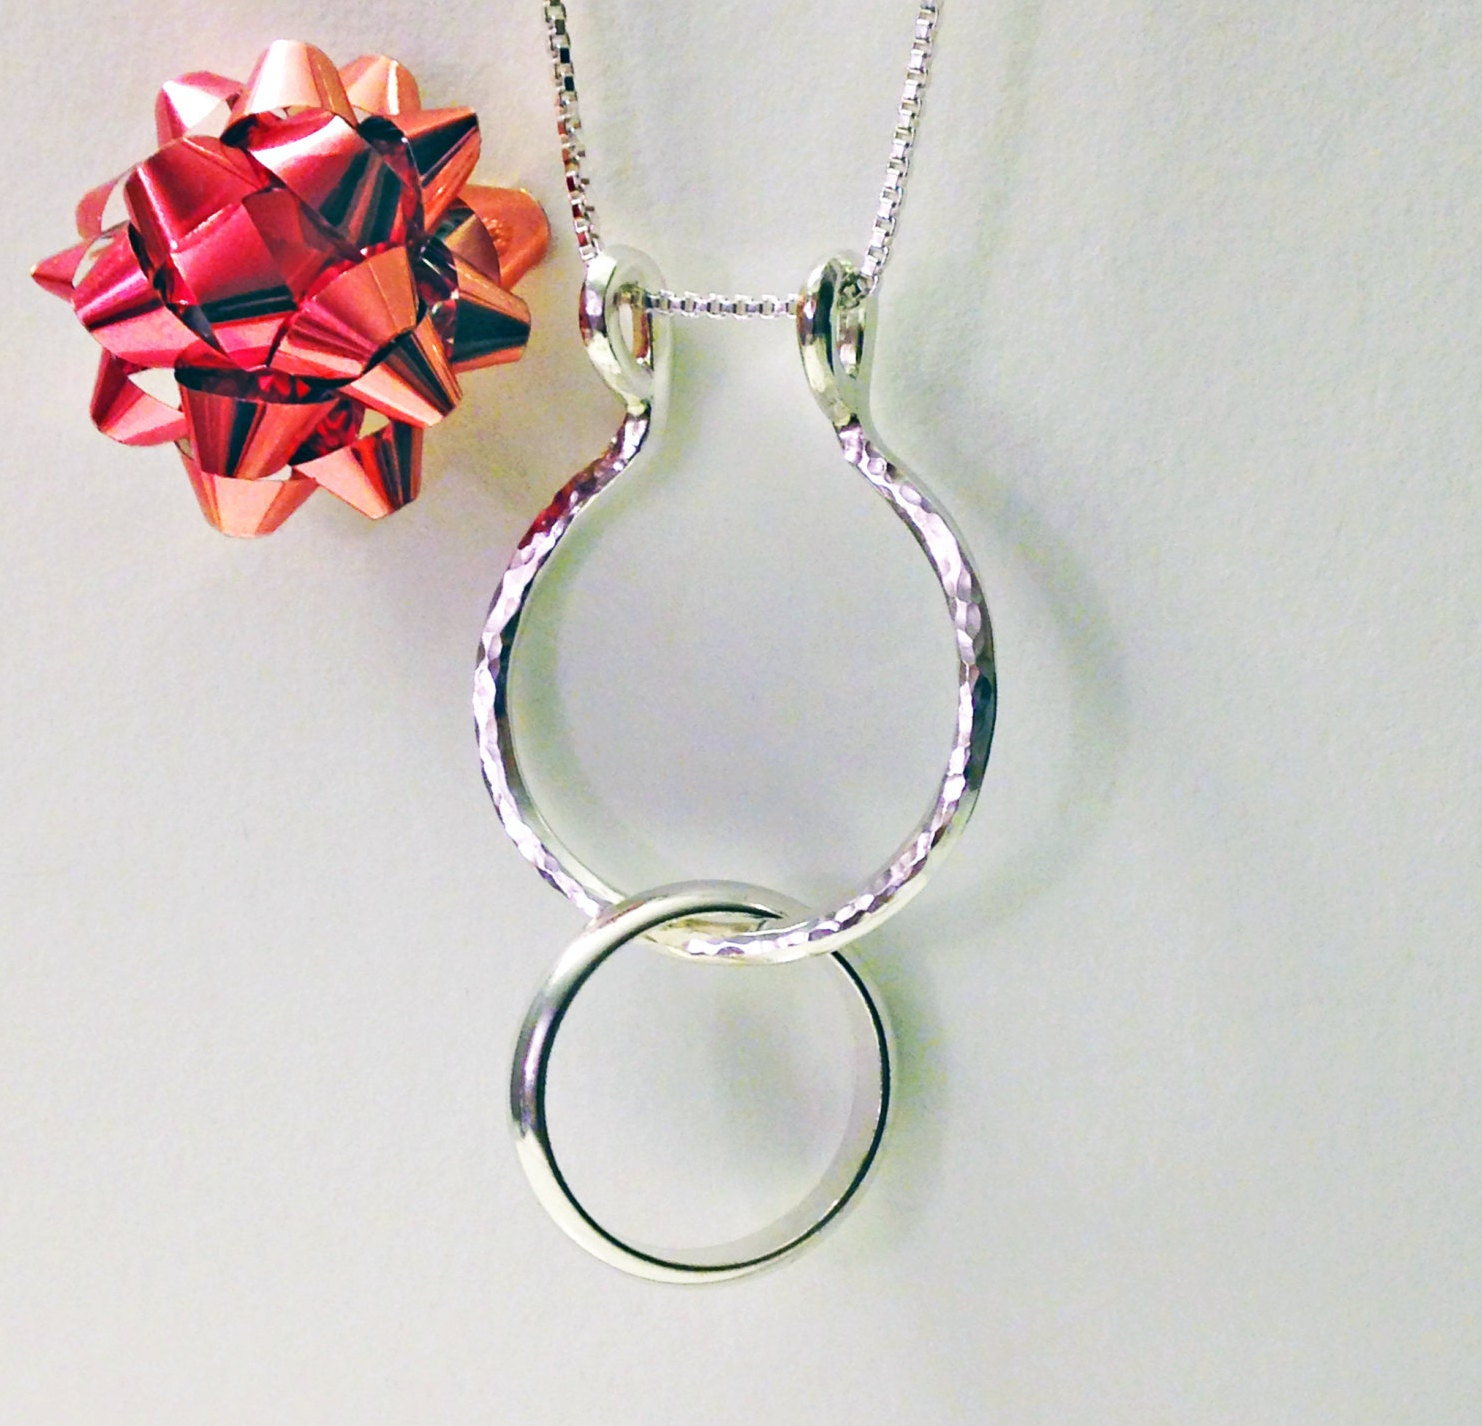 Ring Holder Necklace Hammered Or Smooth Ring Necklace Holder